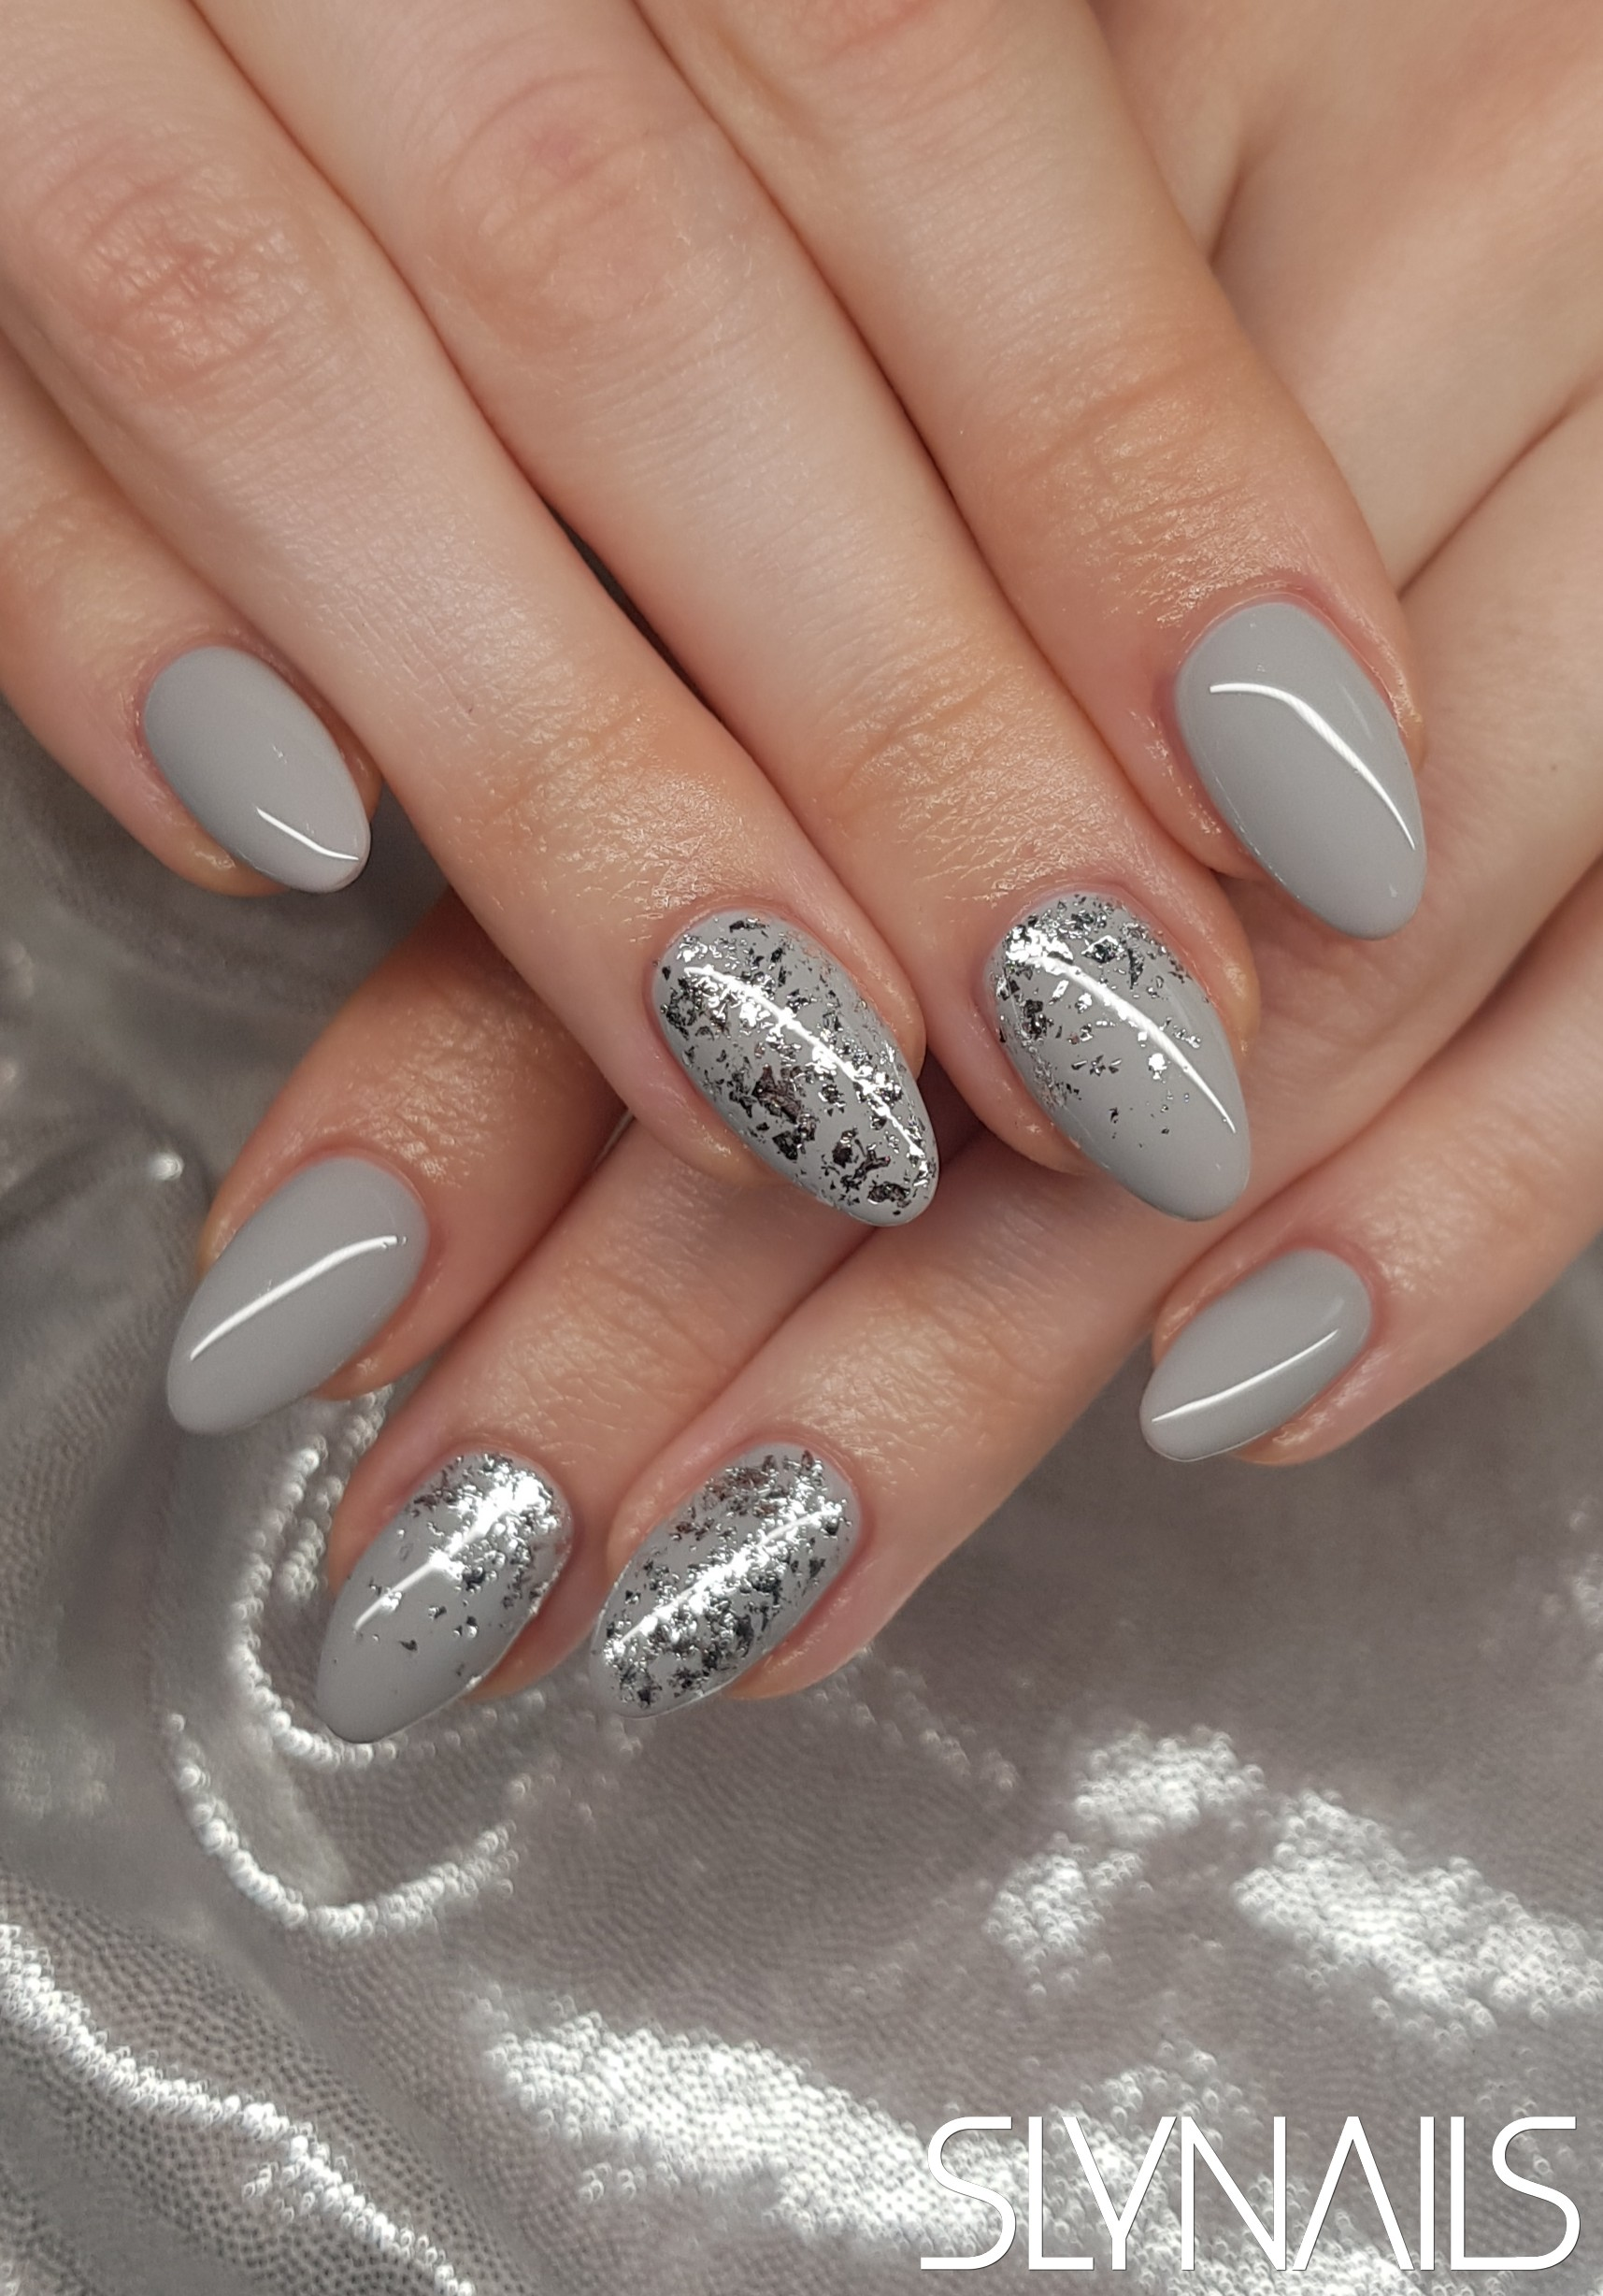 Nail extension, Grey, Almond, Built-in decoration, One color